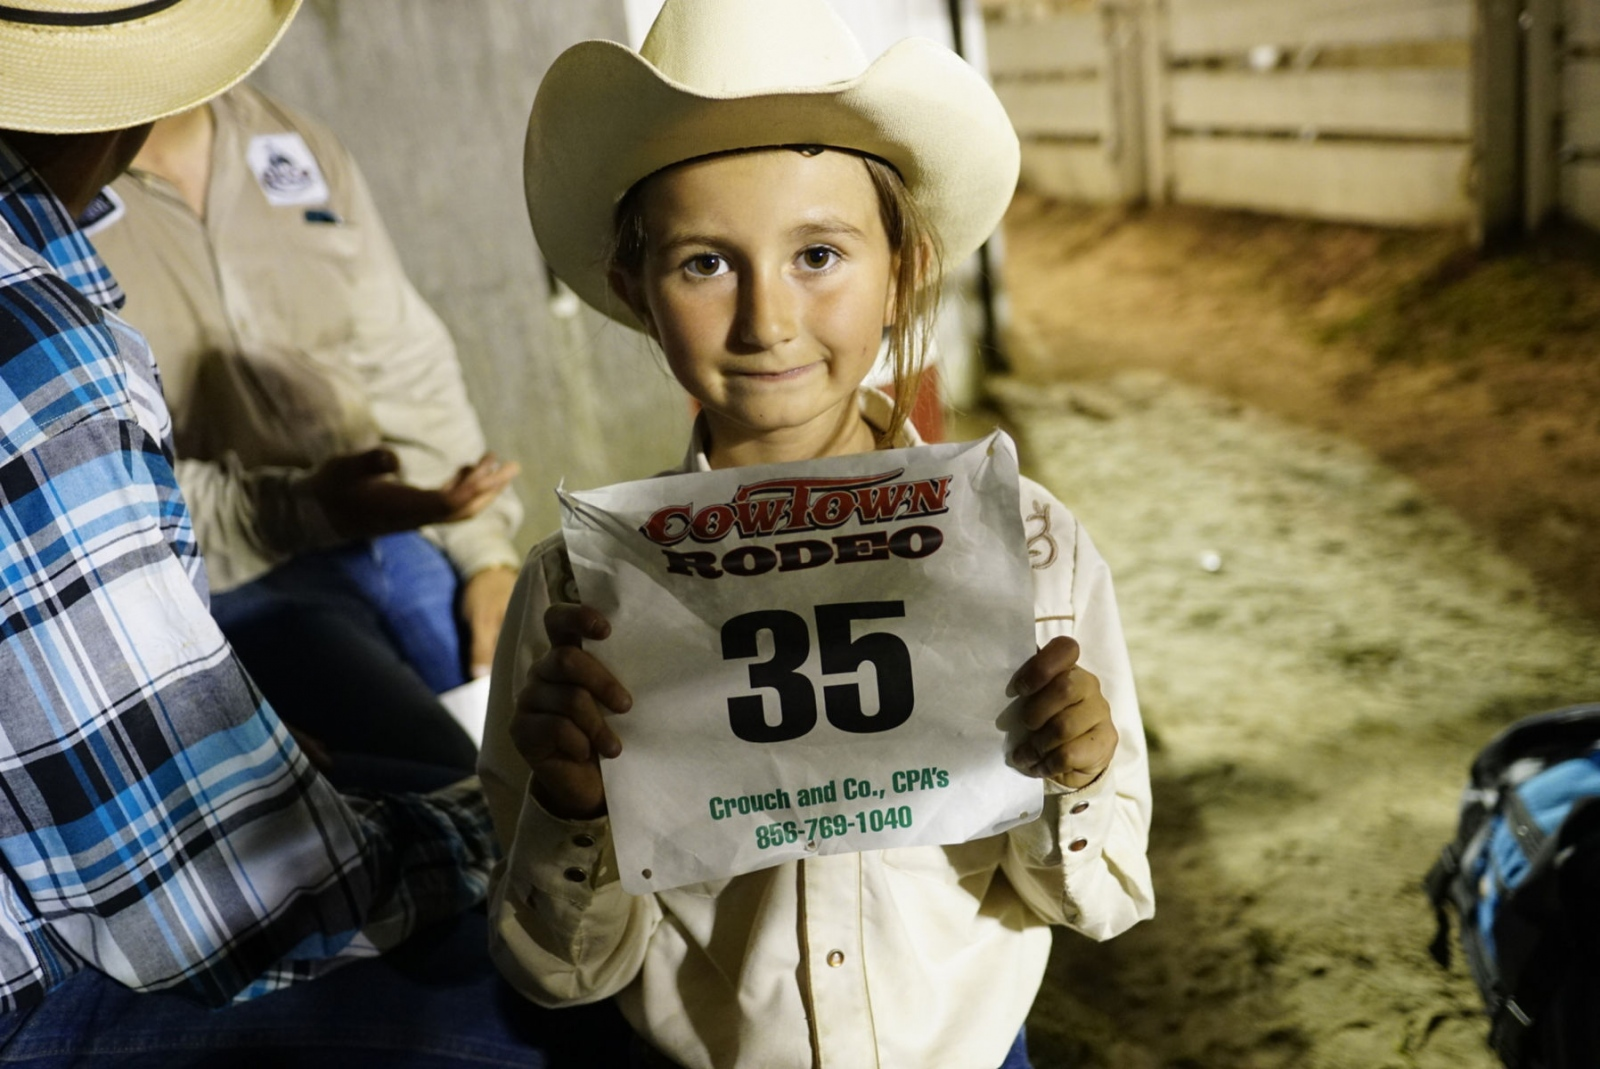 Petite and small 8-year old Cheyenne Gugliotti has won the 2014 Barrel Racing Championship for her age group. She attended Cowtown Rodeo last Saturday, not to compete, but to make sure her father is OK. Every Saturday when he competes in bull riding, she is there by his side while Cheyenne's mom is recovering from injuries to her face after a horse riding accident; some of the bones on her face were broken. They both attend cowboy church to pray for his safety. Last Saturday, her father shirt was torn but otherwise, he was okay. They live in Connecticut on a ranch; her father is the 3rd generation of horsemen.